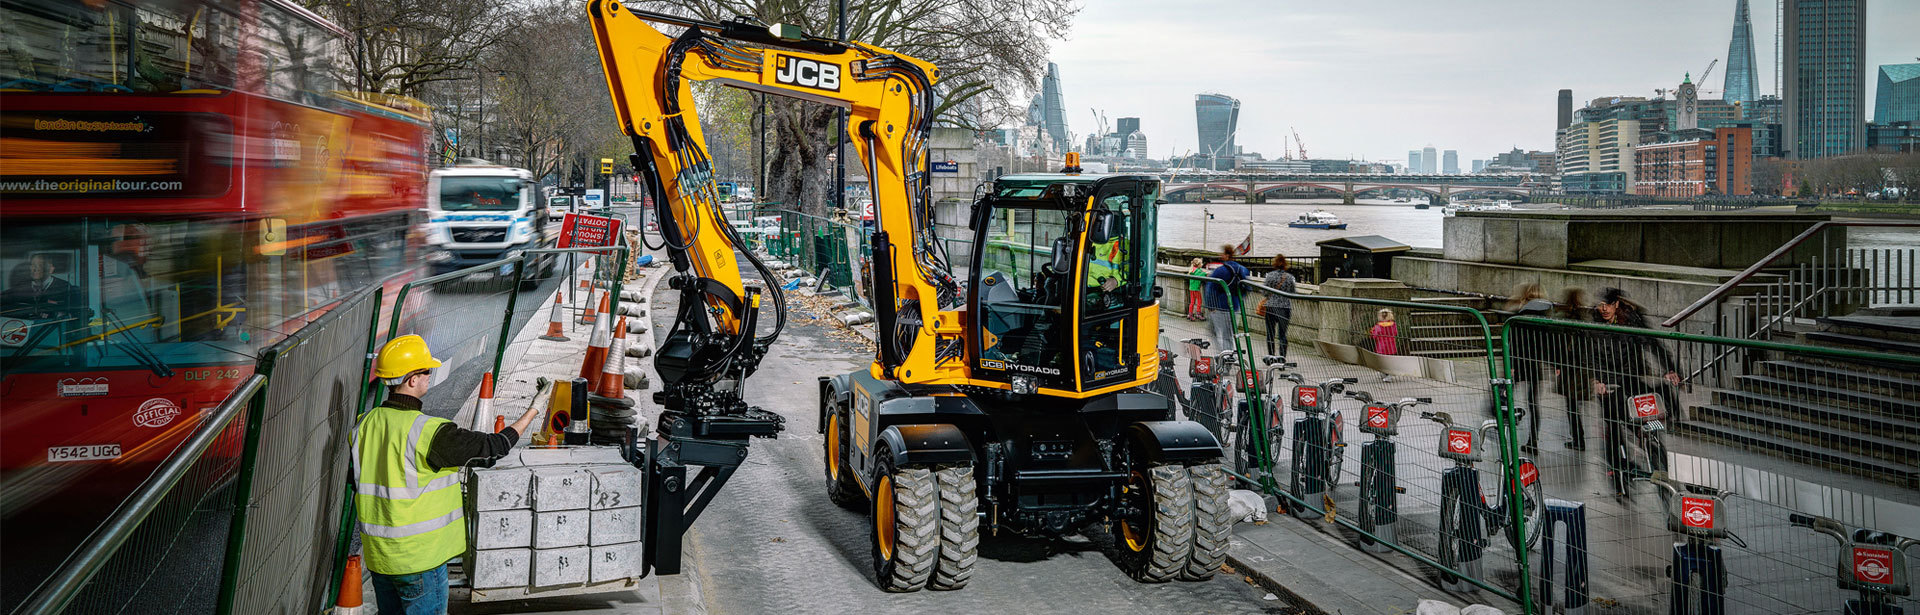 Image of a HYDRADIG 110W